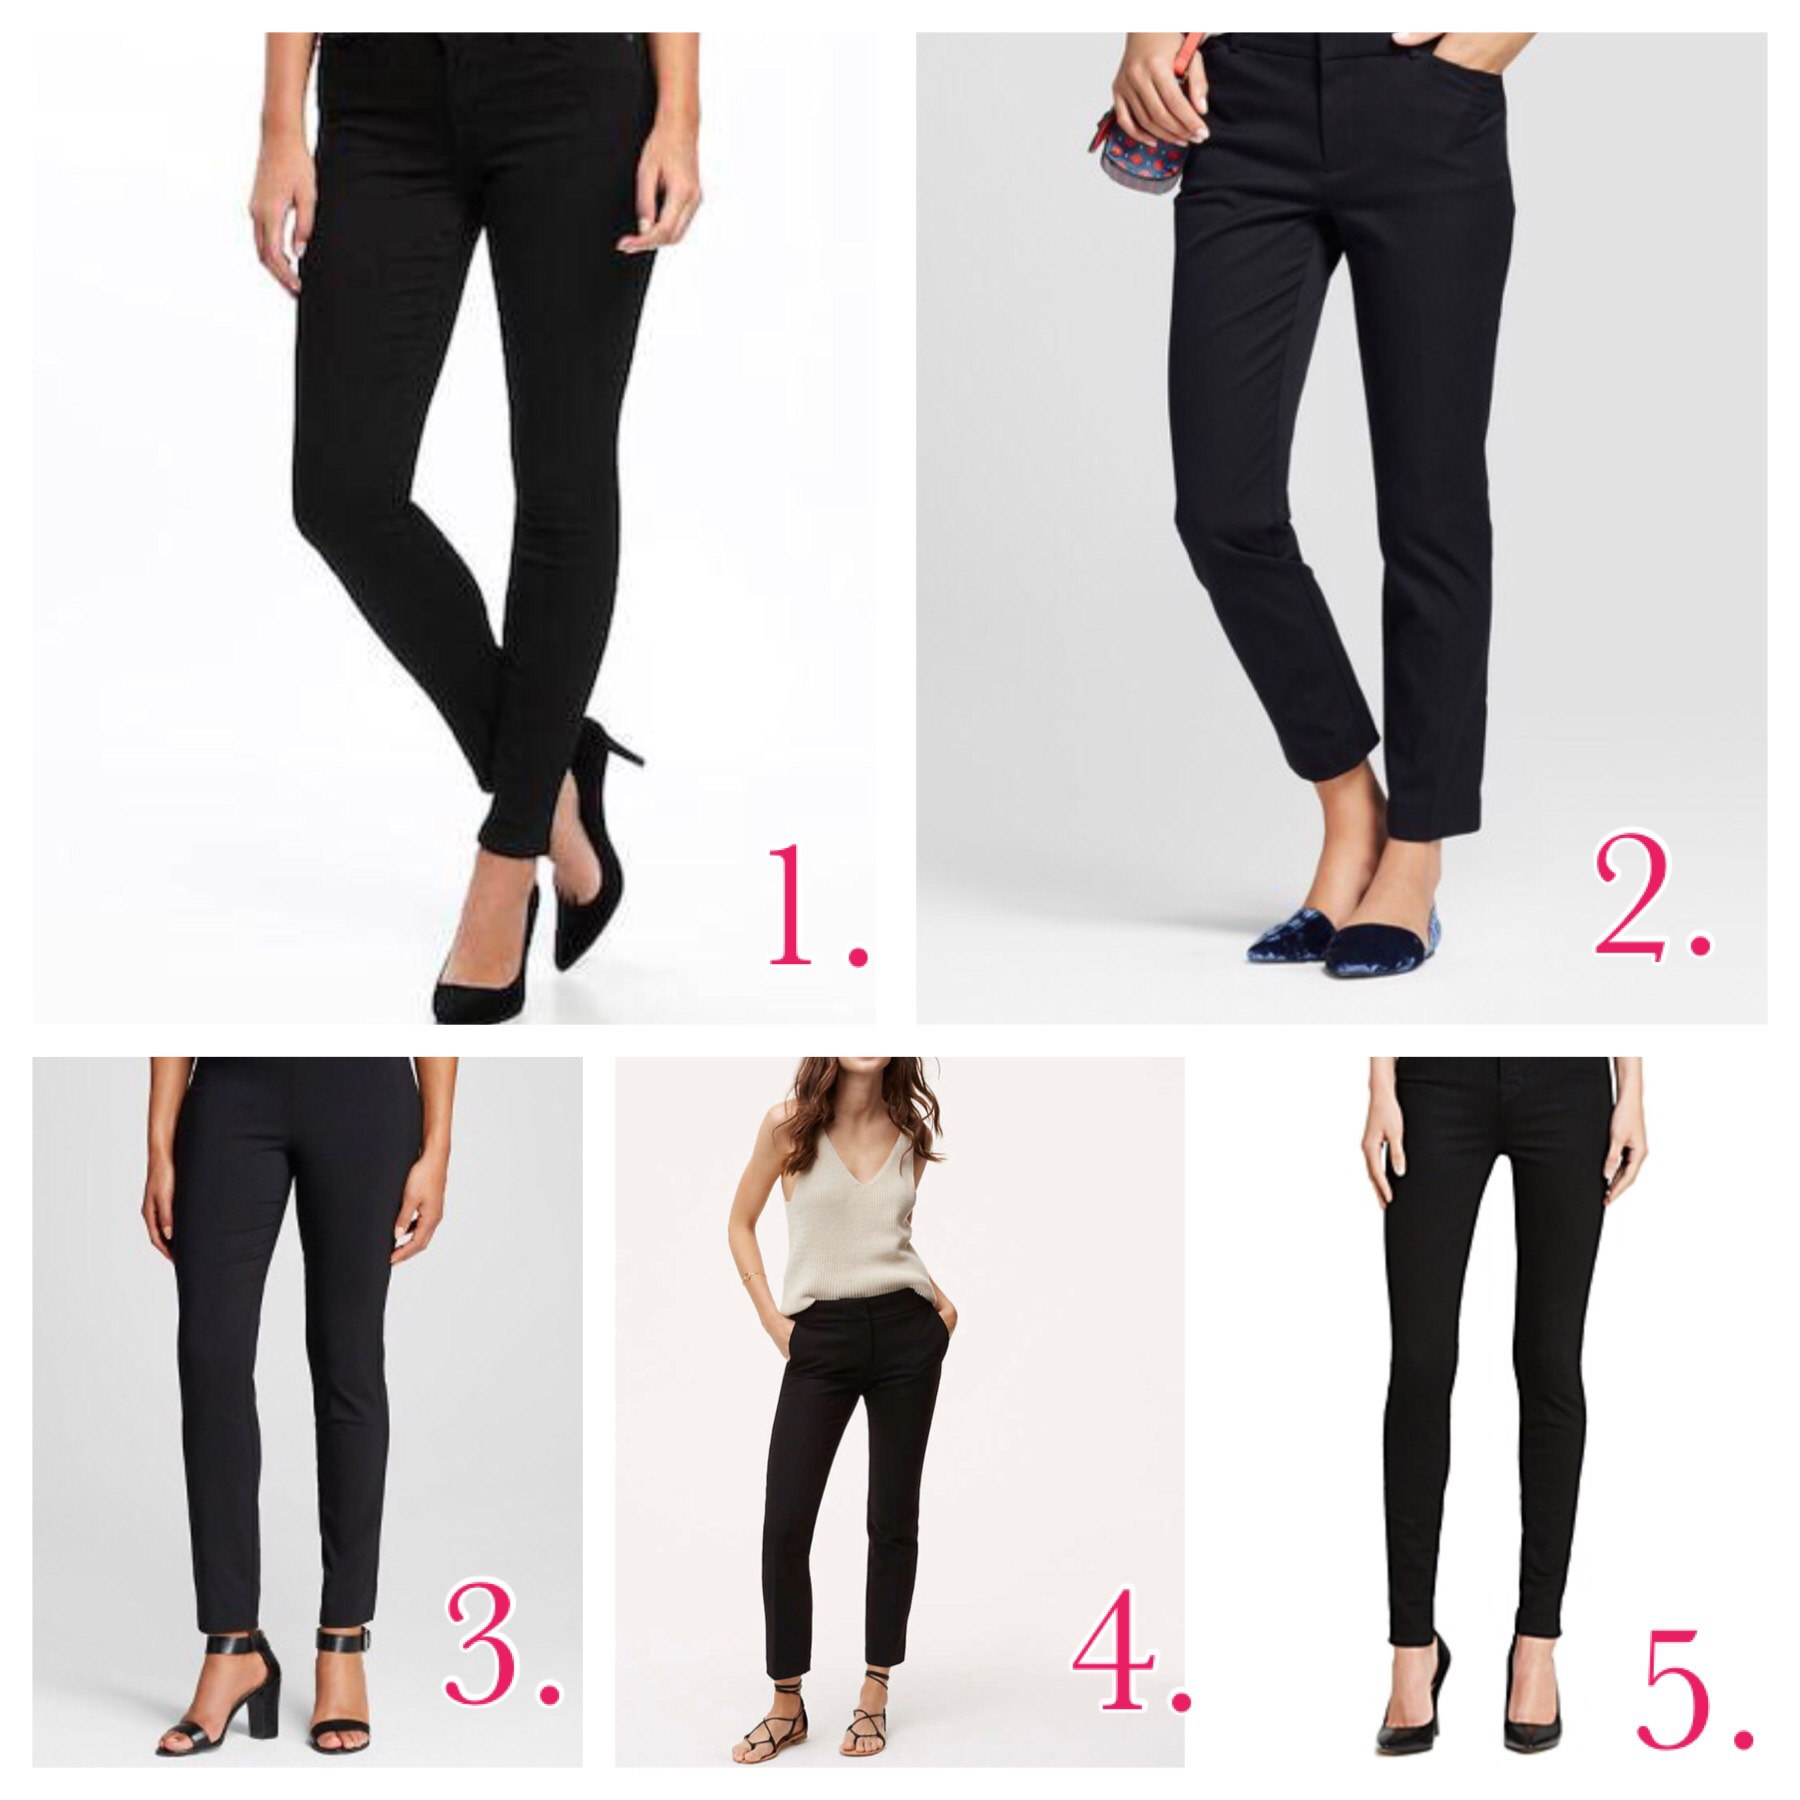 ff88a22f91 My Favorite Flattering Black Pants | The Spoiled Home